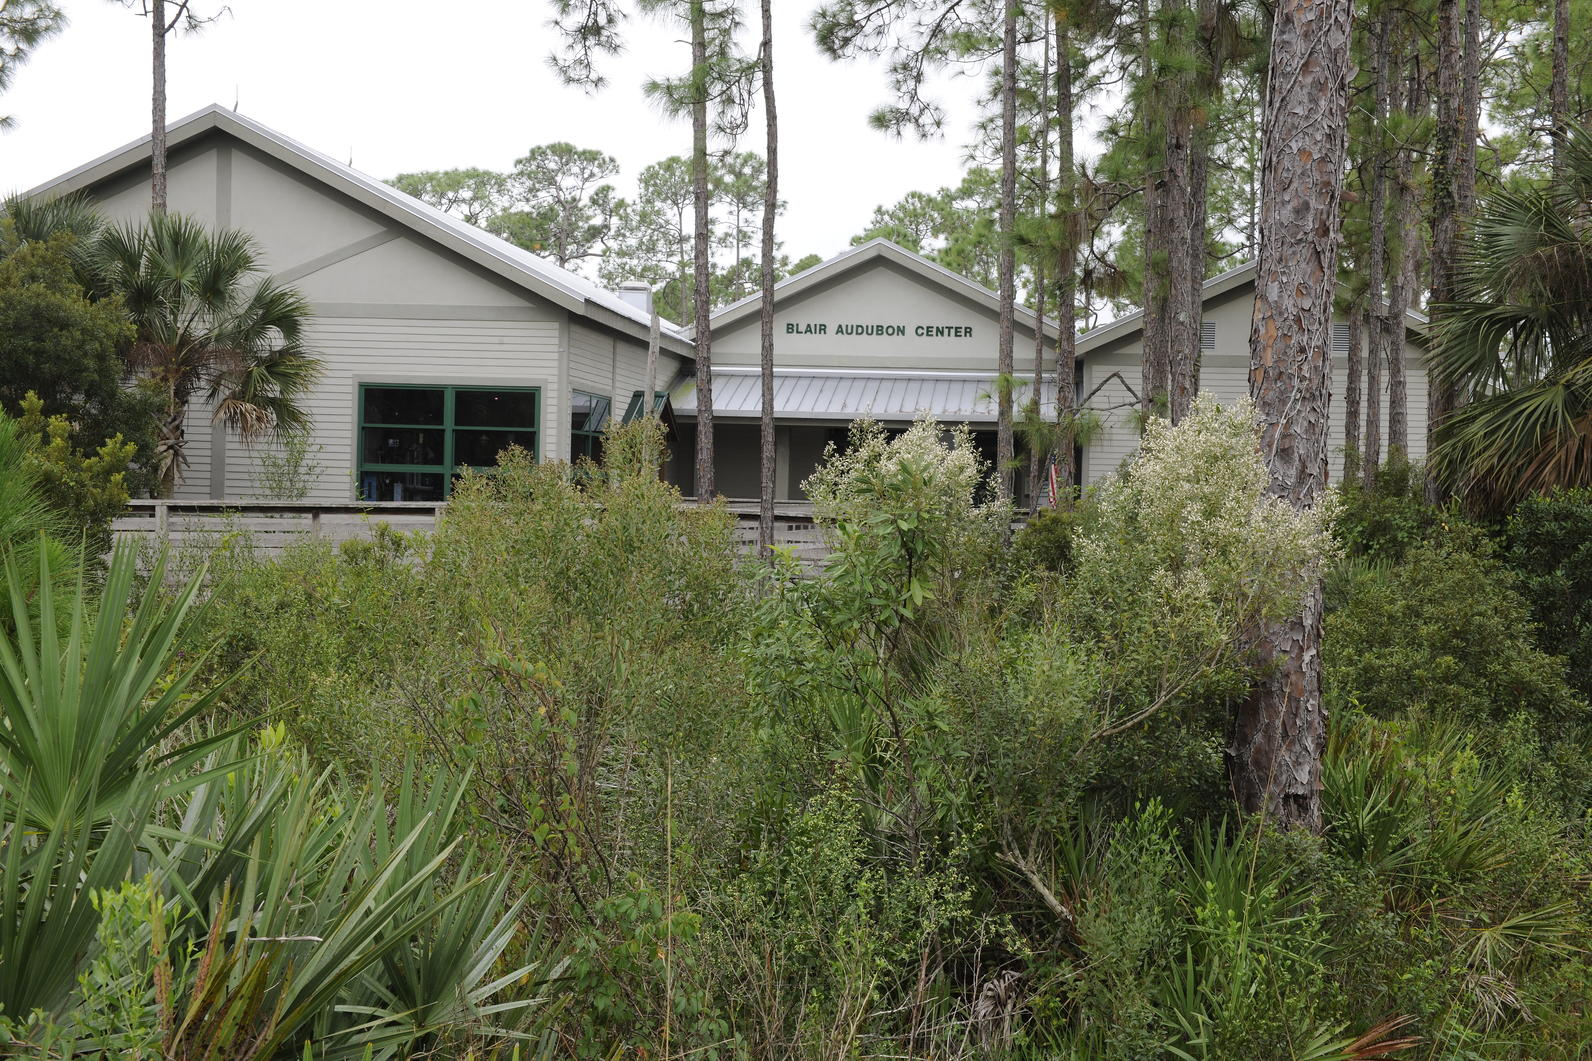 The Blair Center at Corkscrew Swamp Sanctuary